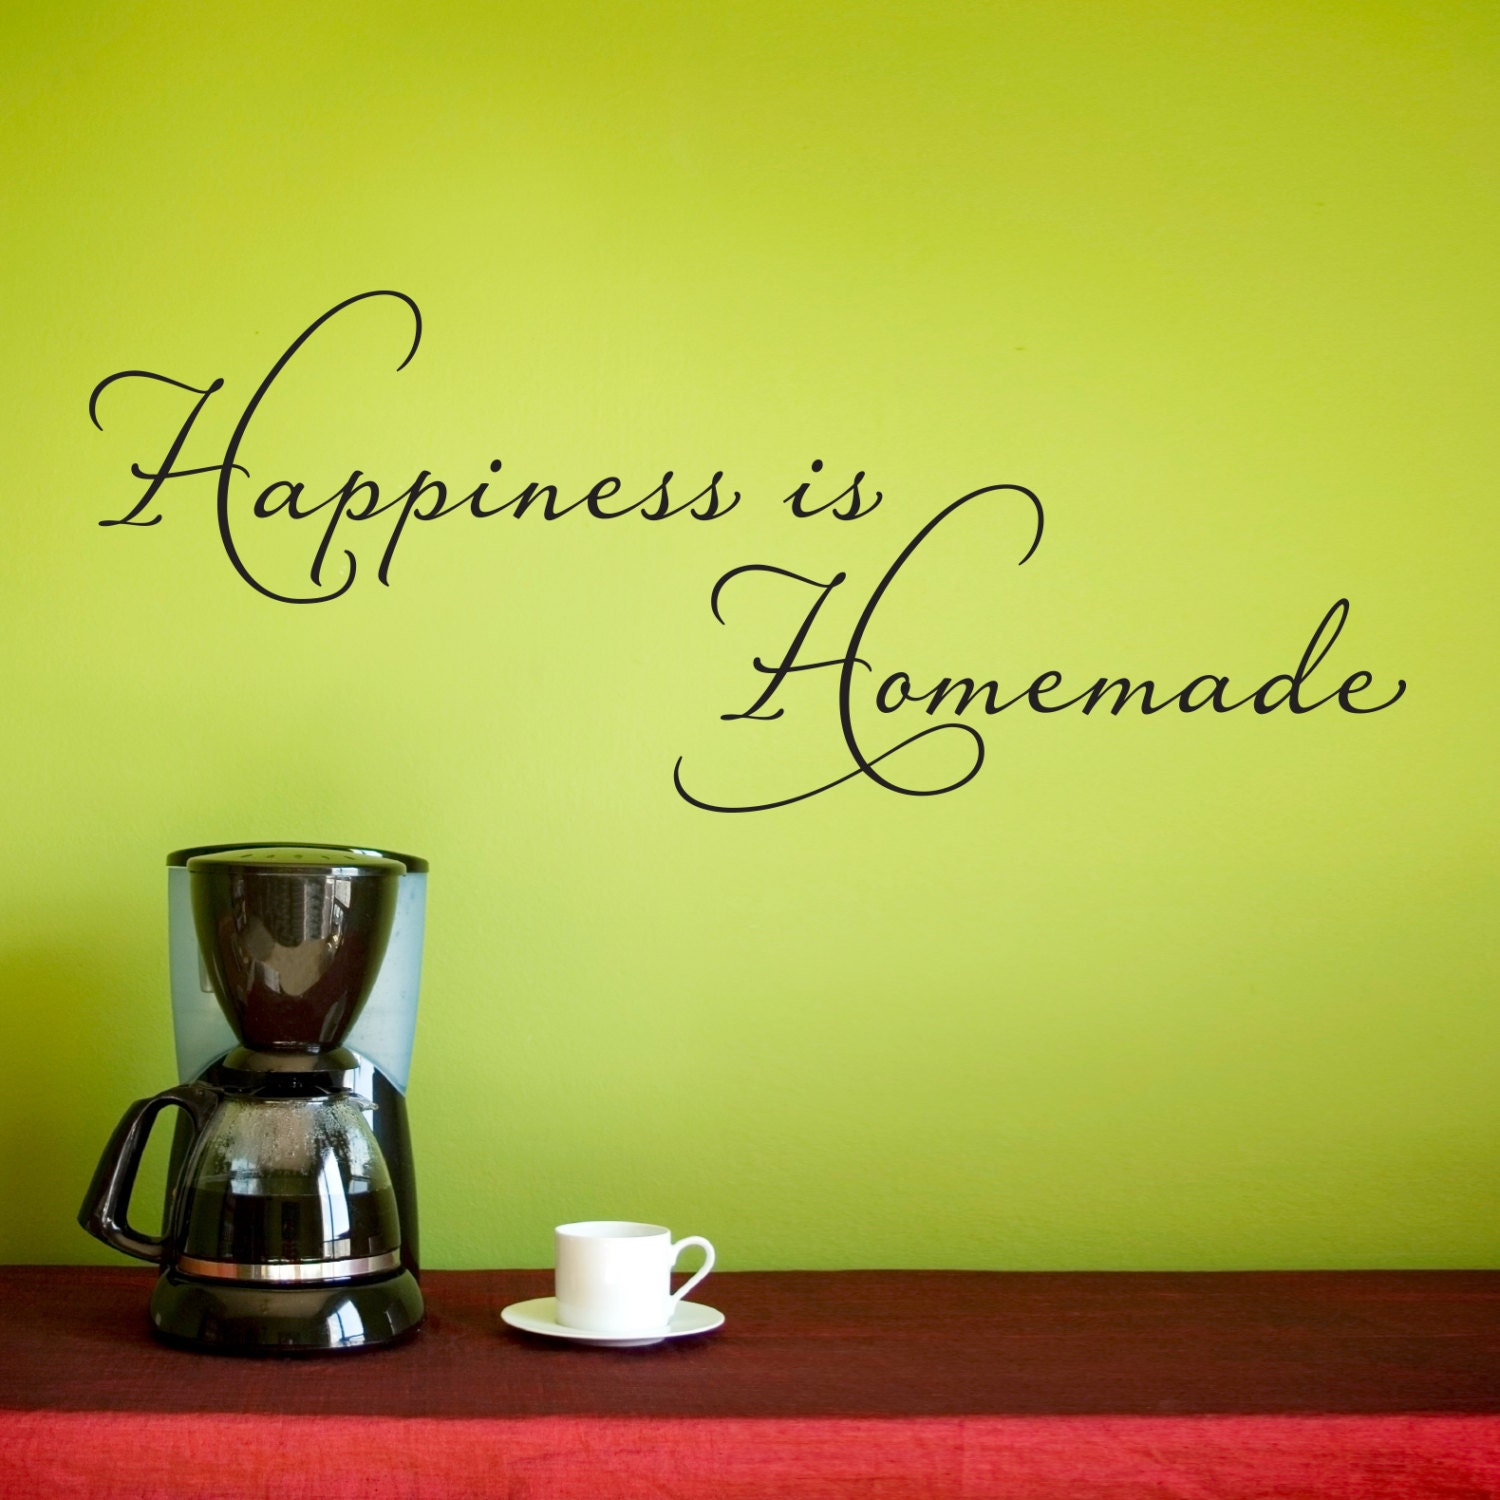 Happiness is Homemade Wall Decal Kitchen Wall Sticker | Etsy